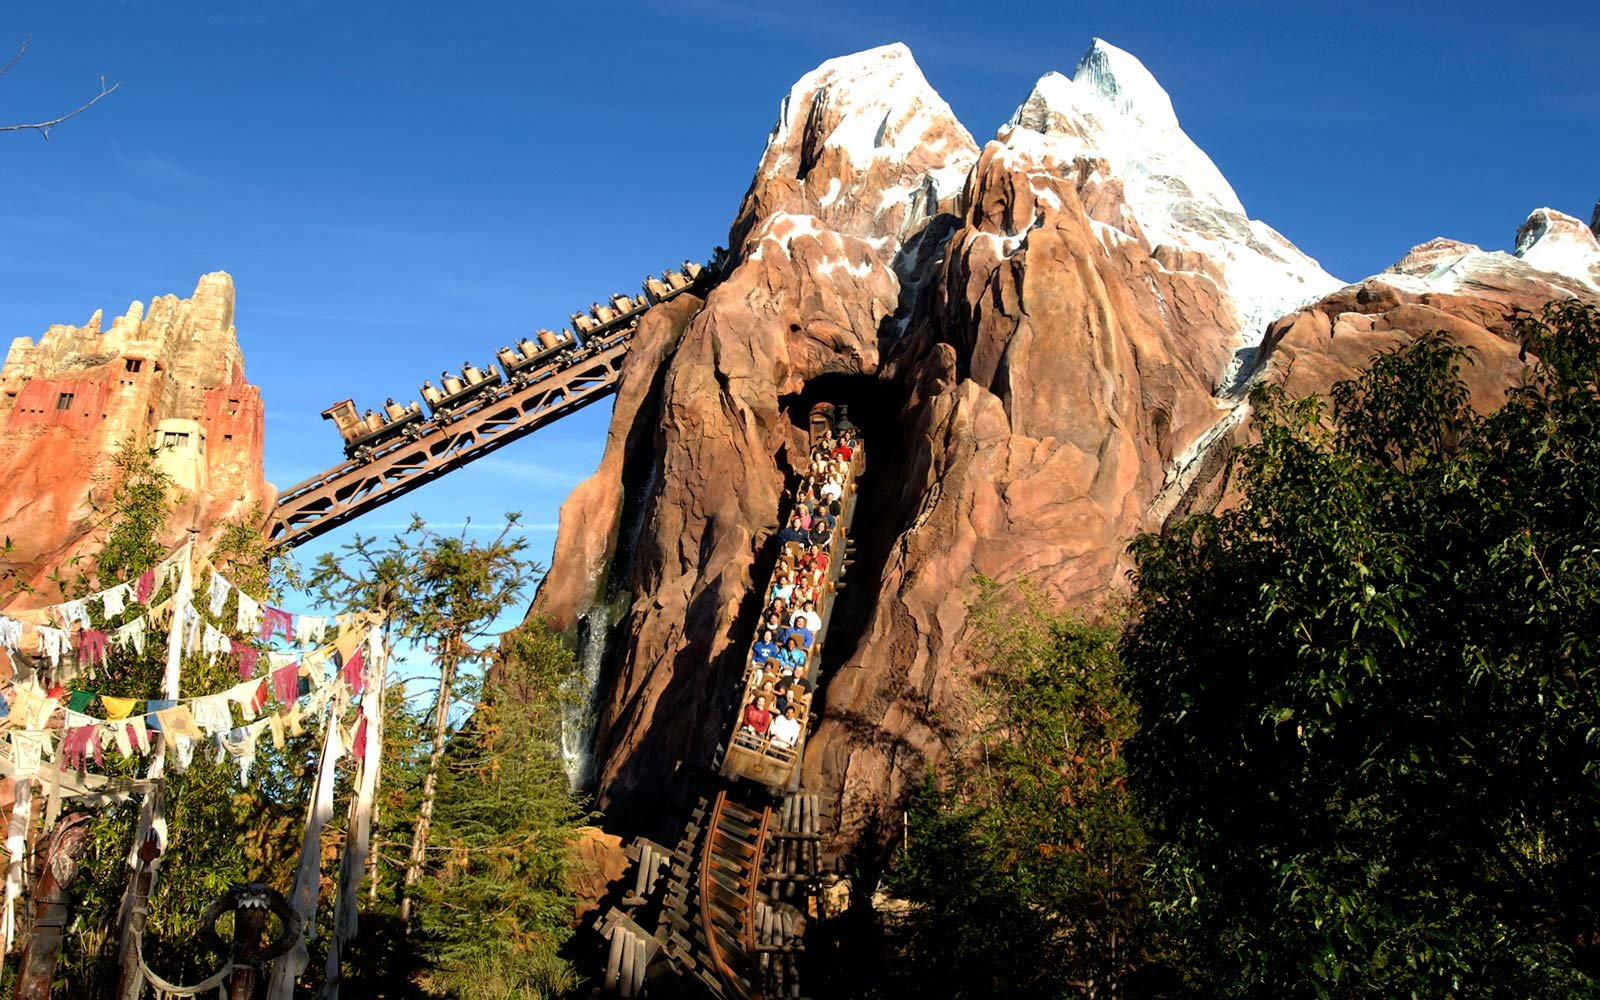 1. Expedition Everest - Legend of the Forbidden Mountain